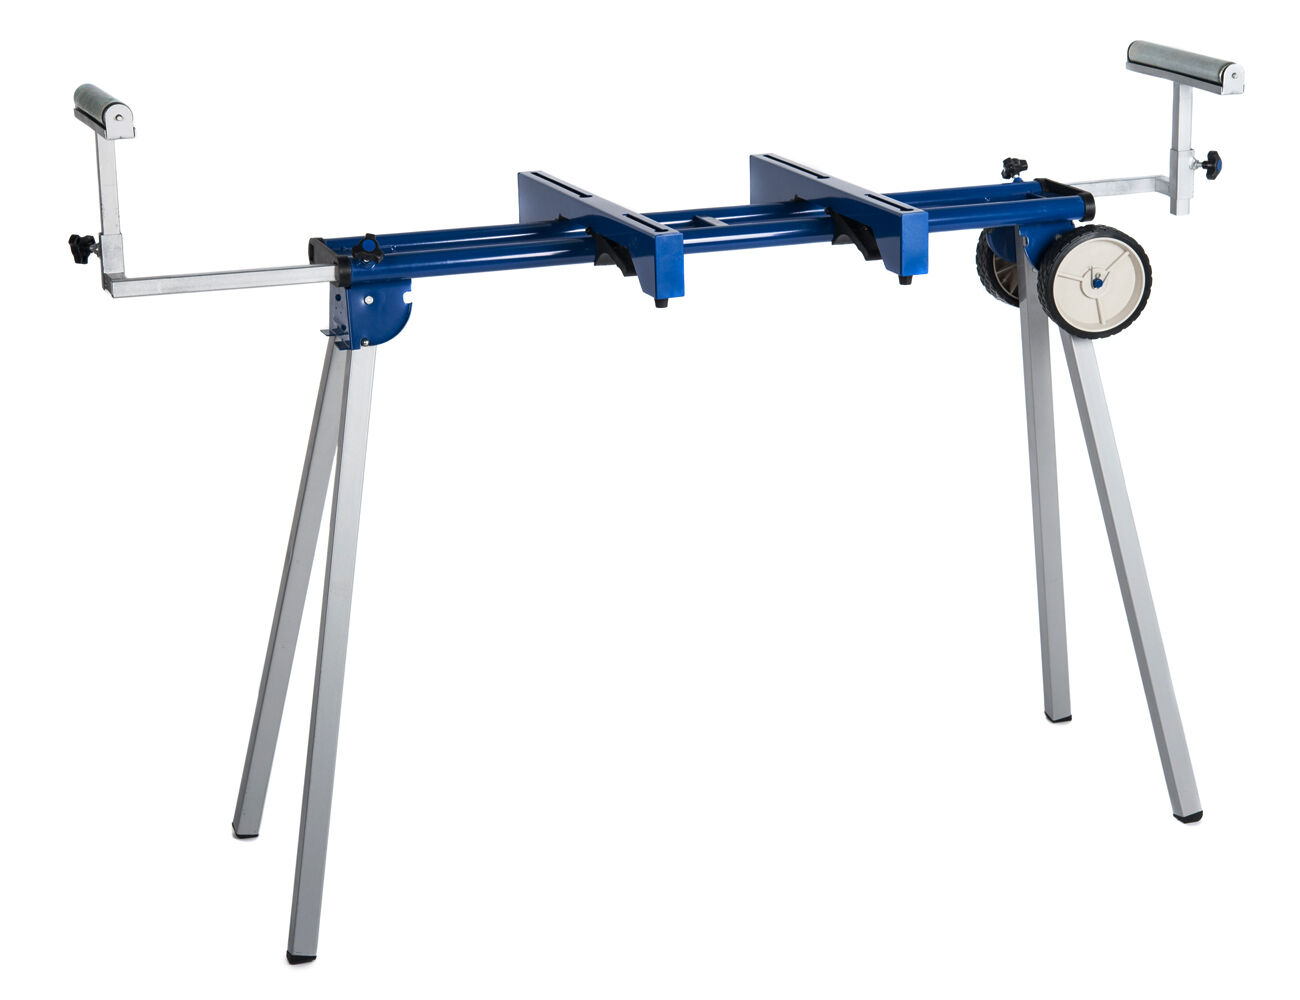 Hico Universal Folding Miter Saw Stand With Wheels And